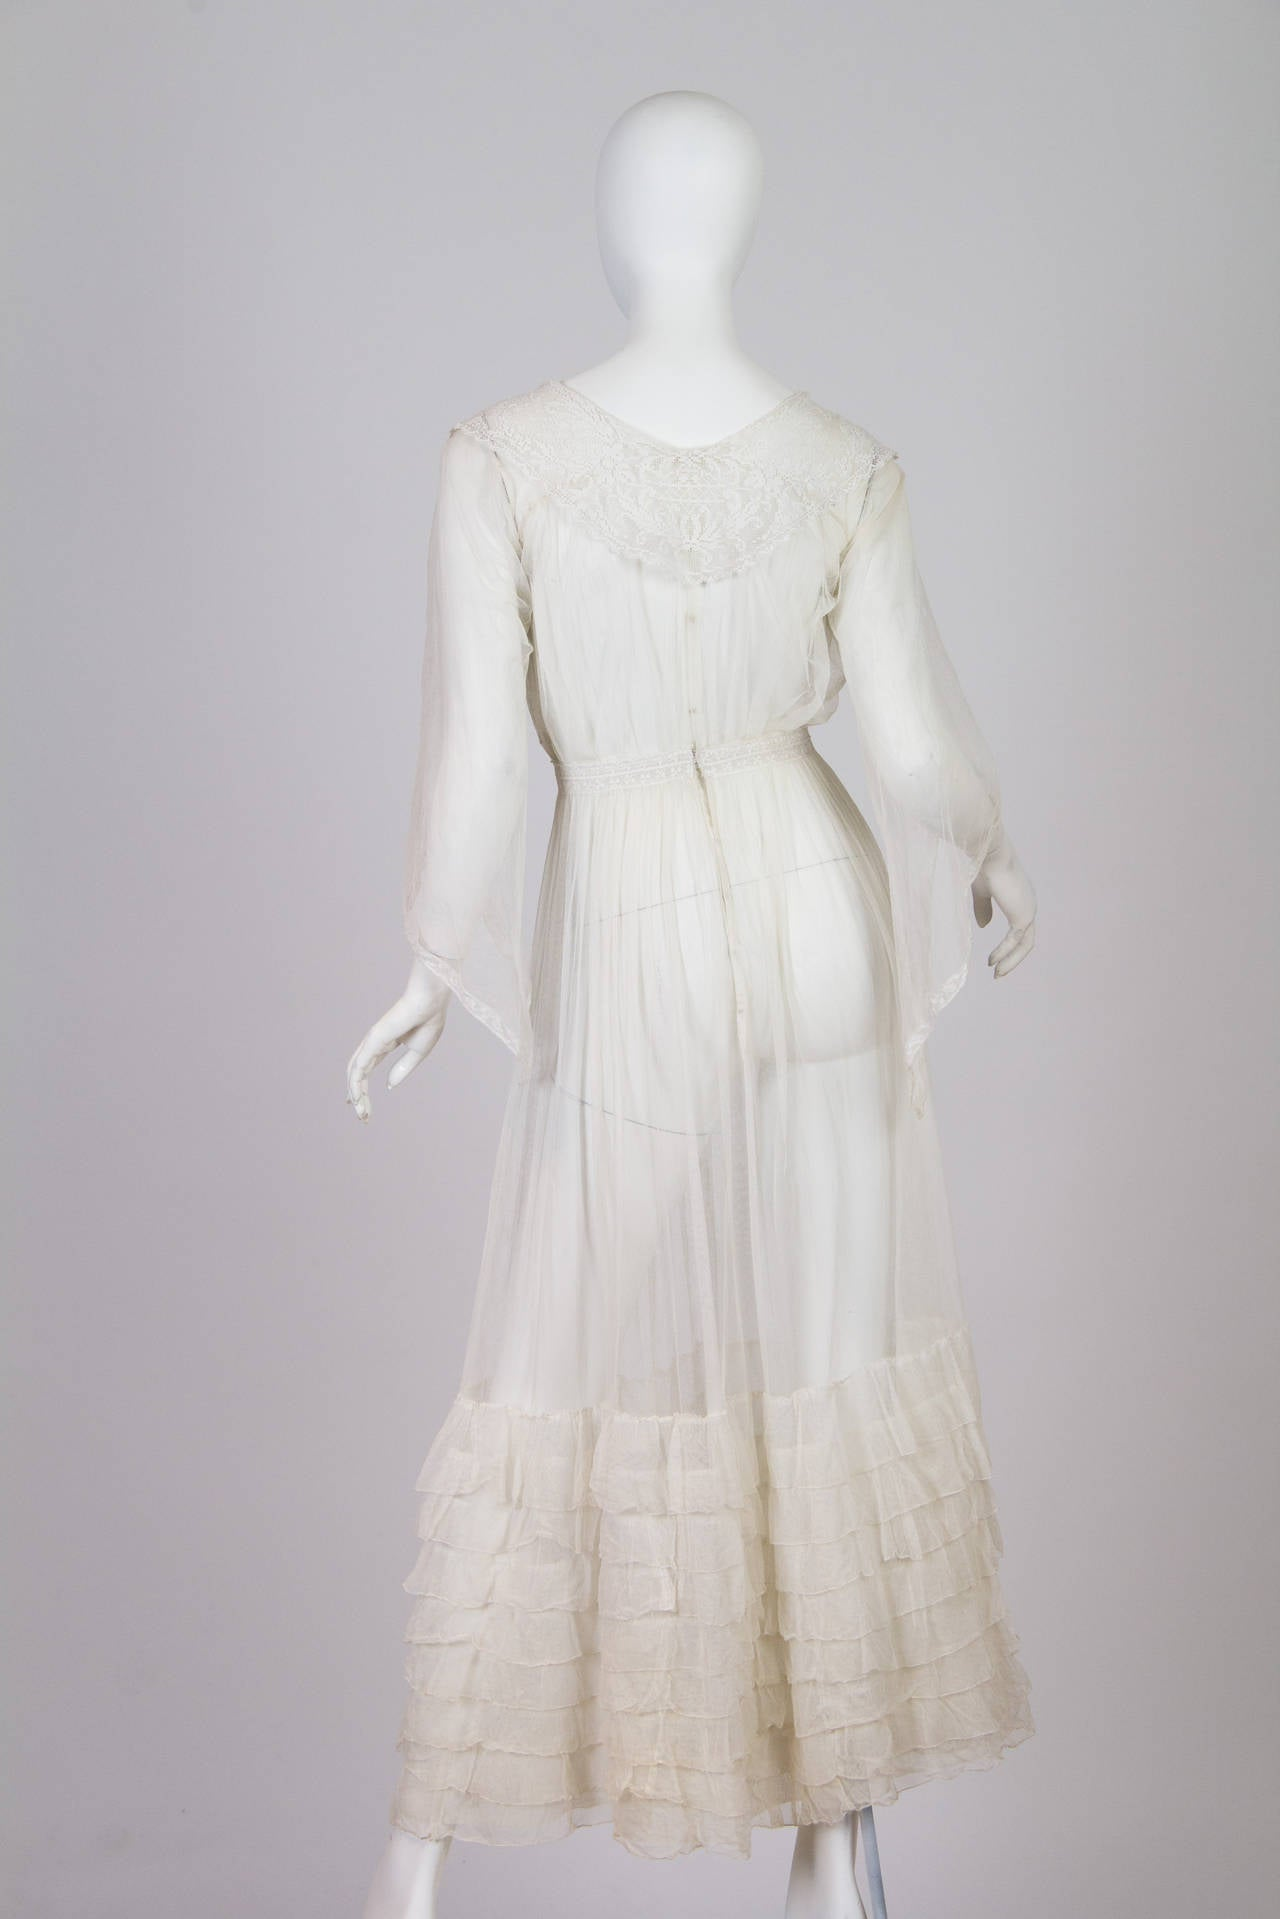 1910s Cotton Net Dress with Irish crochet and lace trim 3